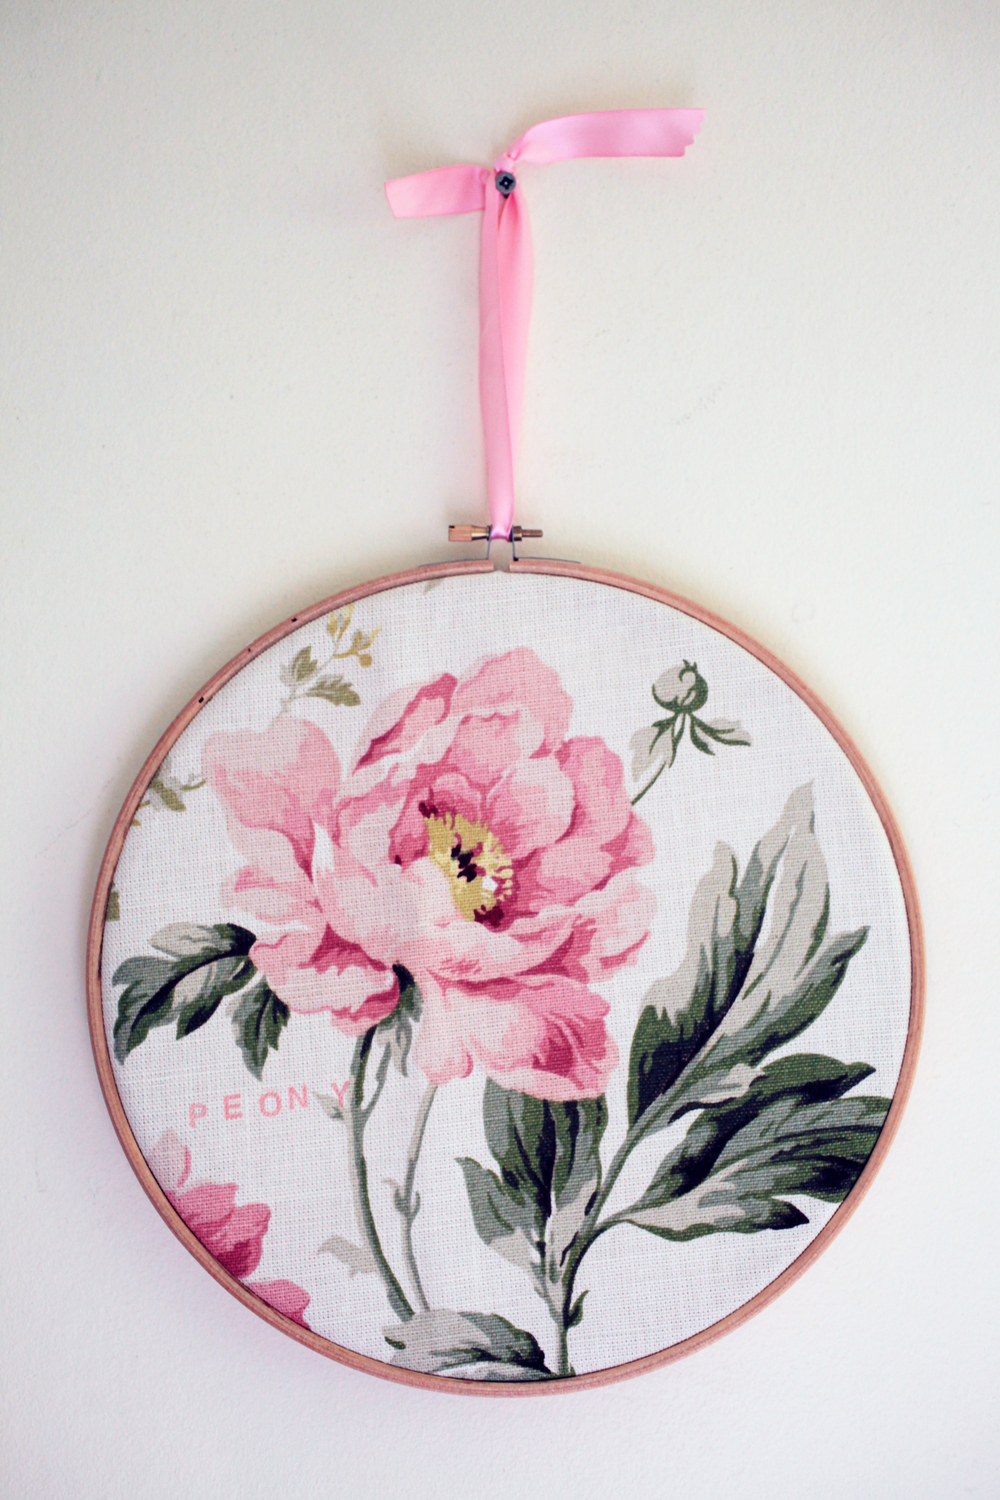 Peonycraft 019.jpg